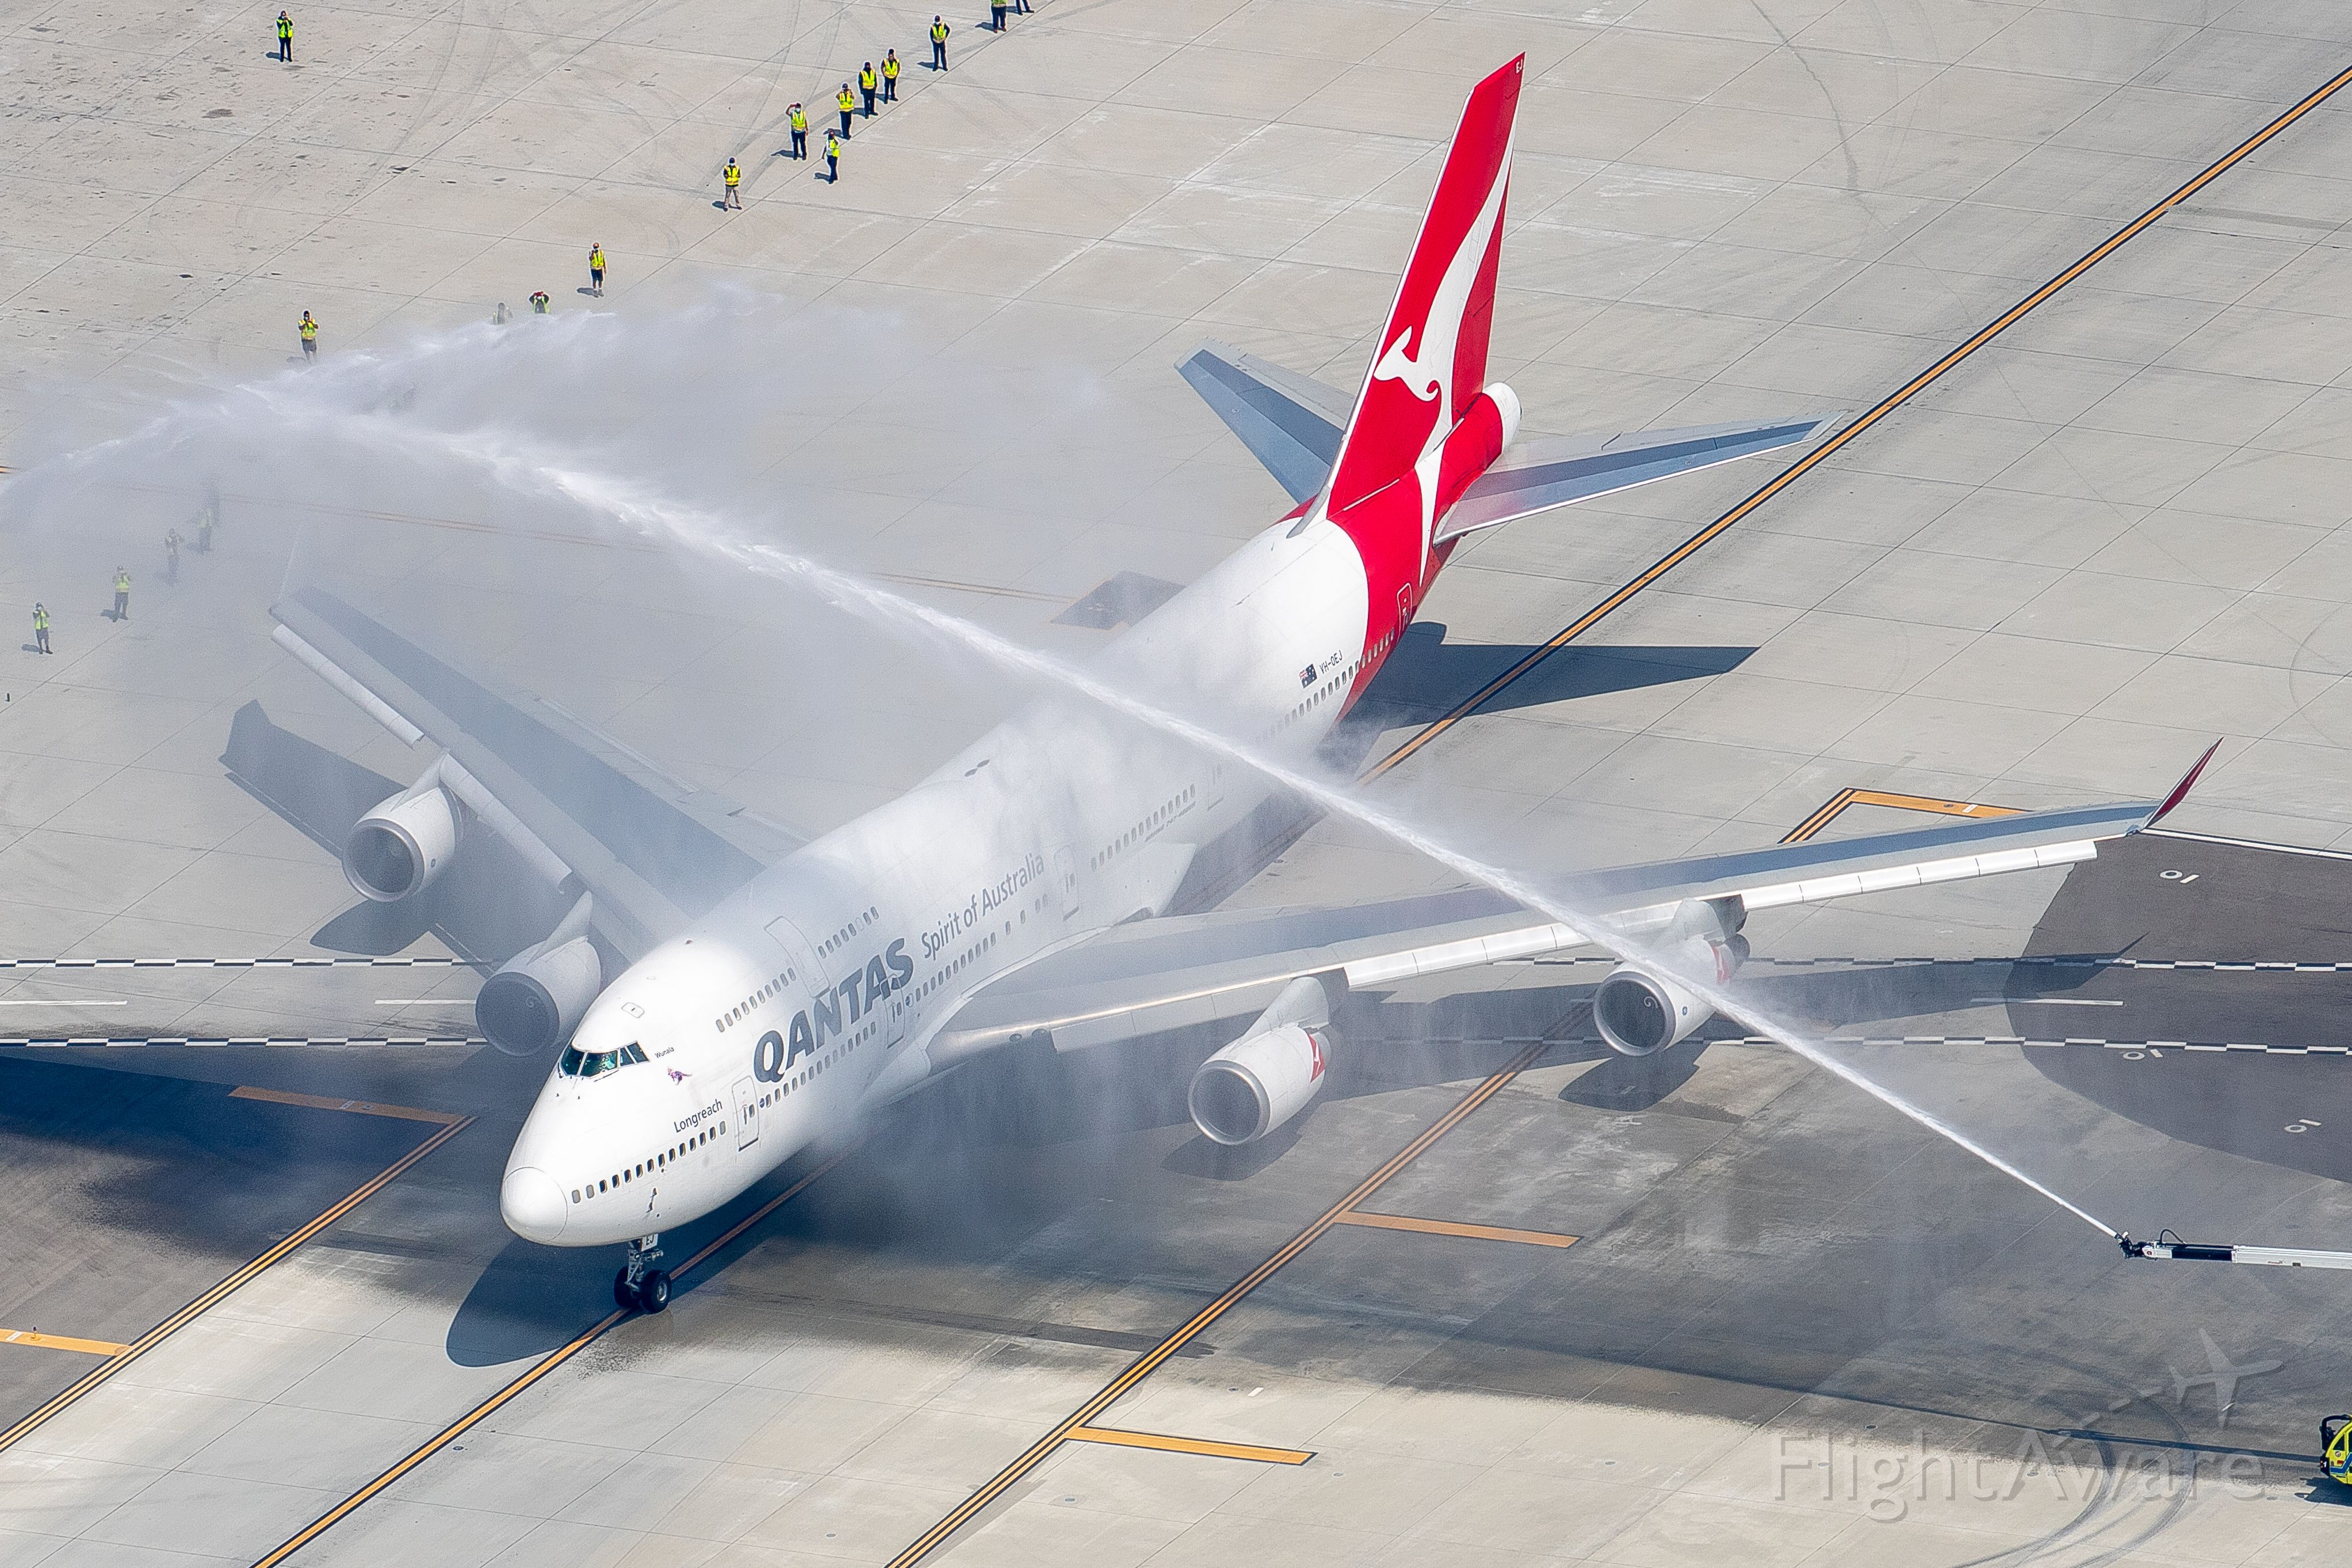 Boeing 747-400 (VH-OEJ) - One final goodbye for the Qantas 747 at LAX before departing Mojave